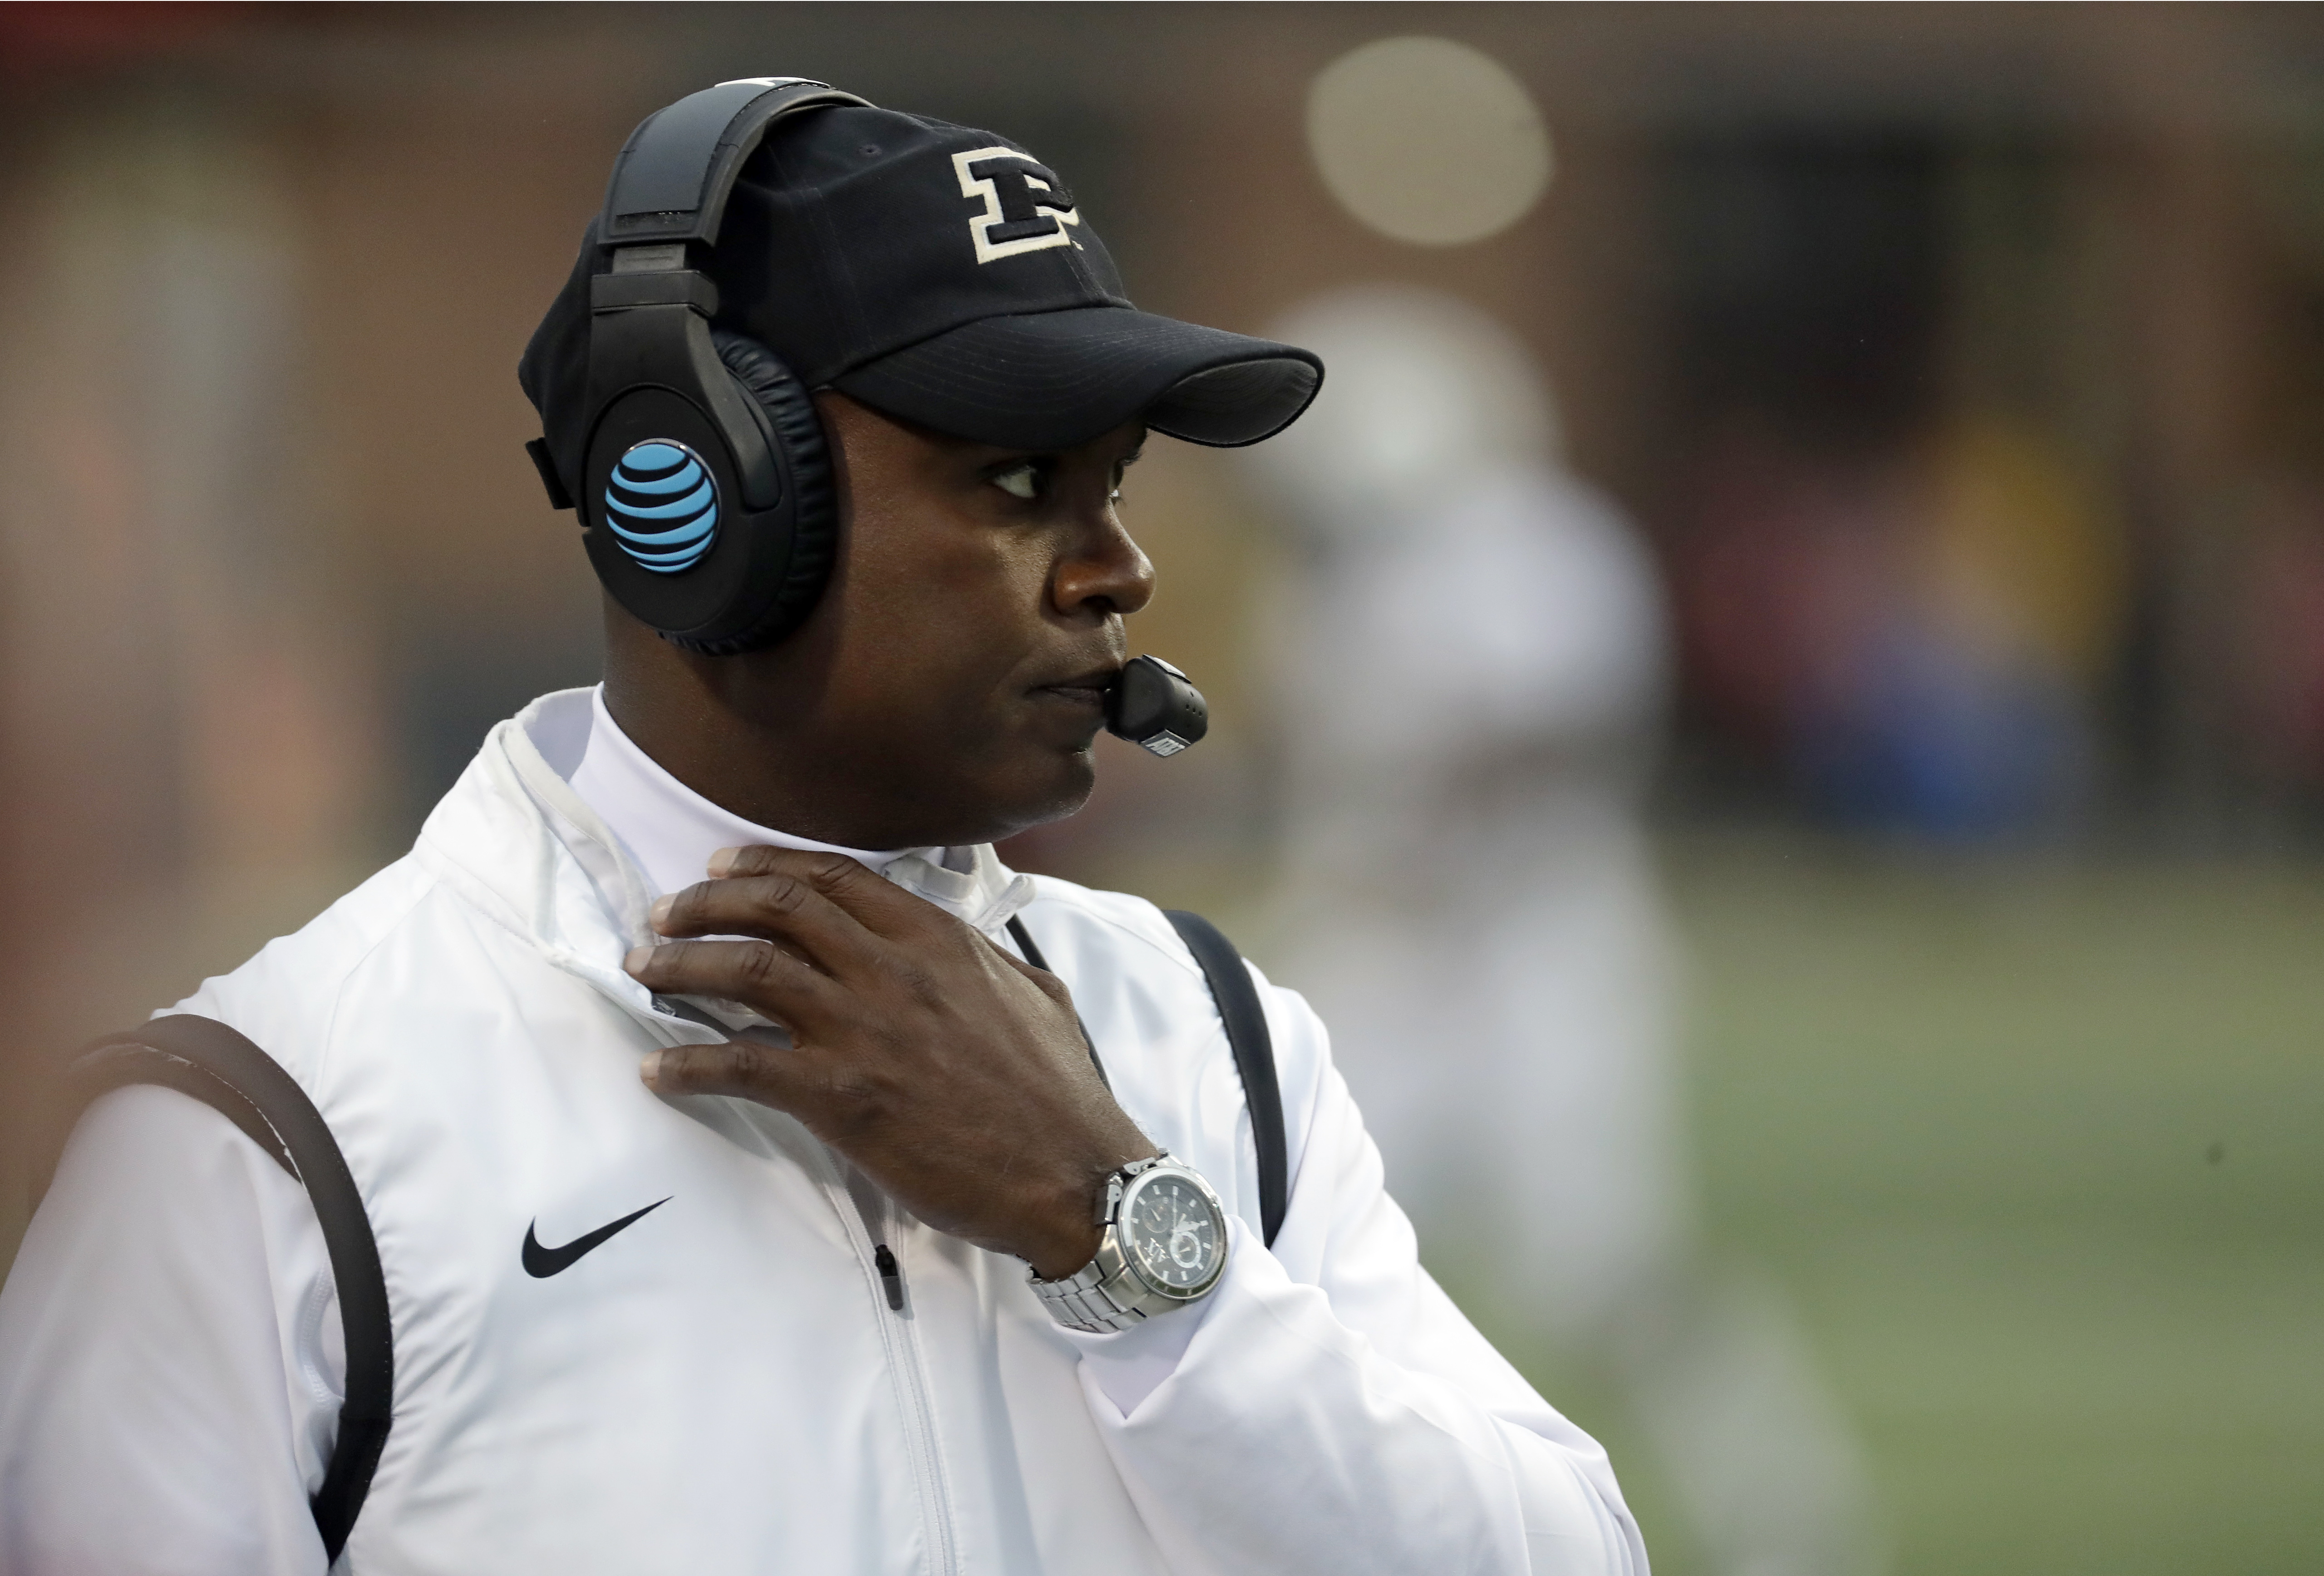 FILE - In this Oct. 1, 2016, file photo, Purdue head coach Darrell Hazell walks on the field in the second half of an NCAA college football game against Maryland in College Park, Md. Purdue coach Darrell Hazell keeps talking about his improved team. But a